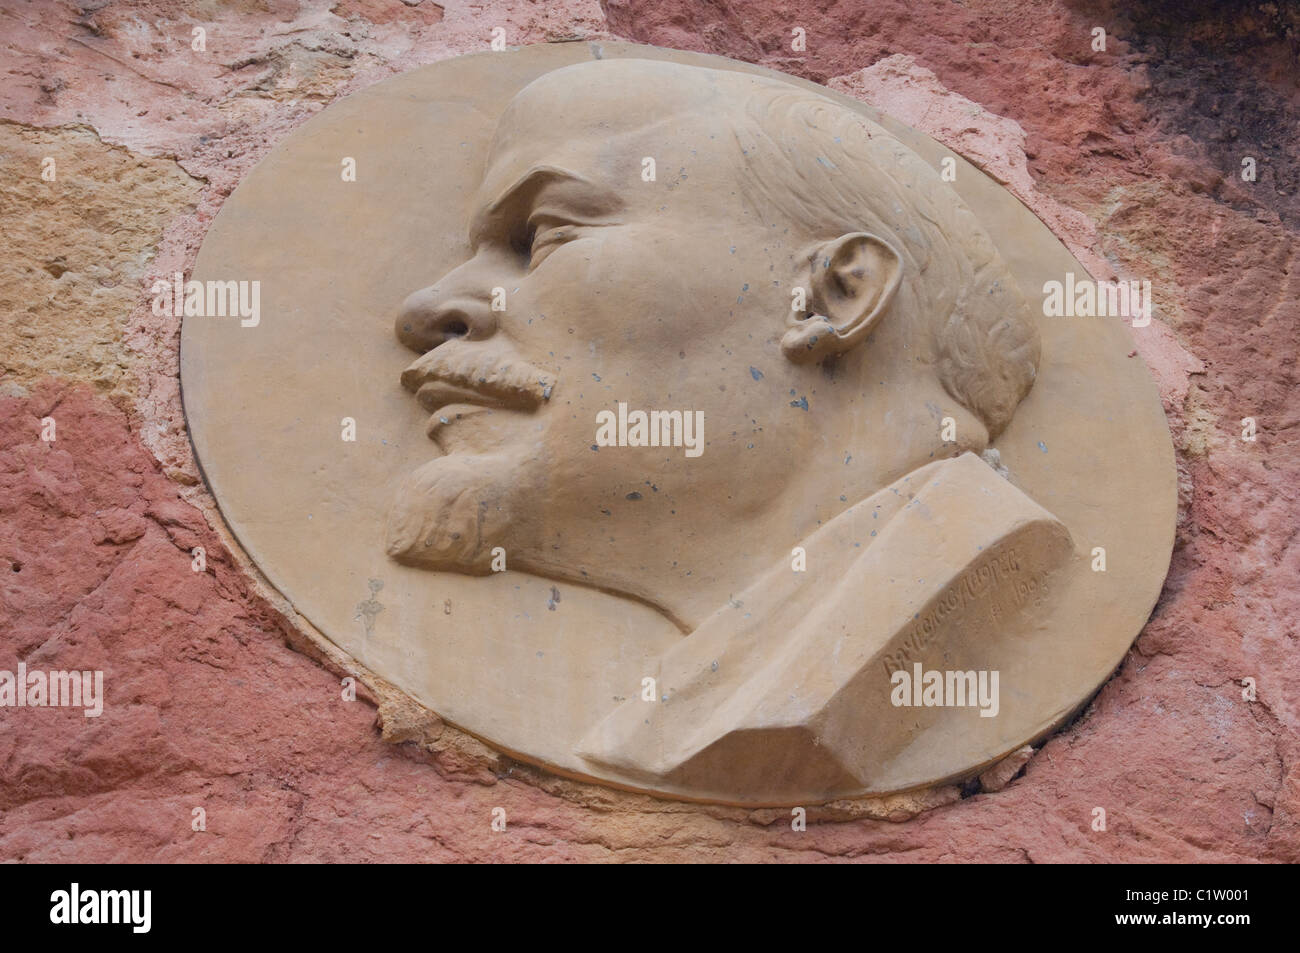 Lenin relief plaque in Kislovodsk in the Russian Federation - Stock Image